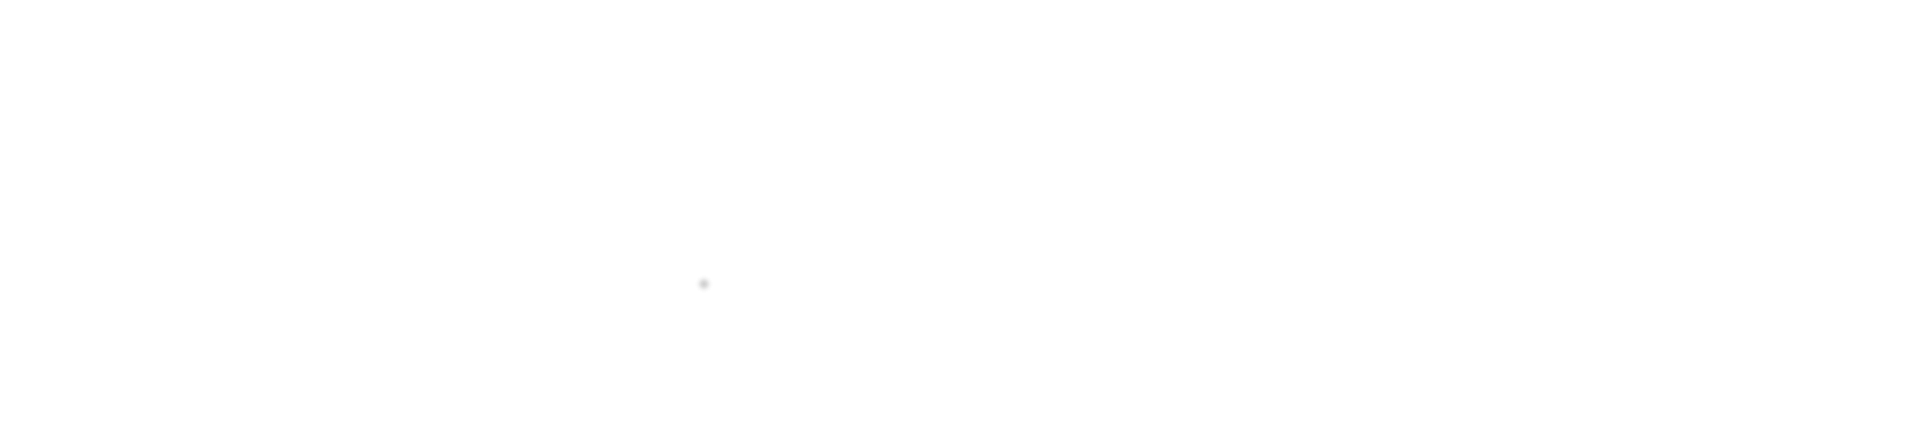 Find your perfect racket